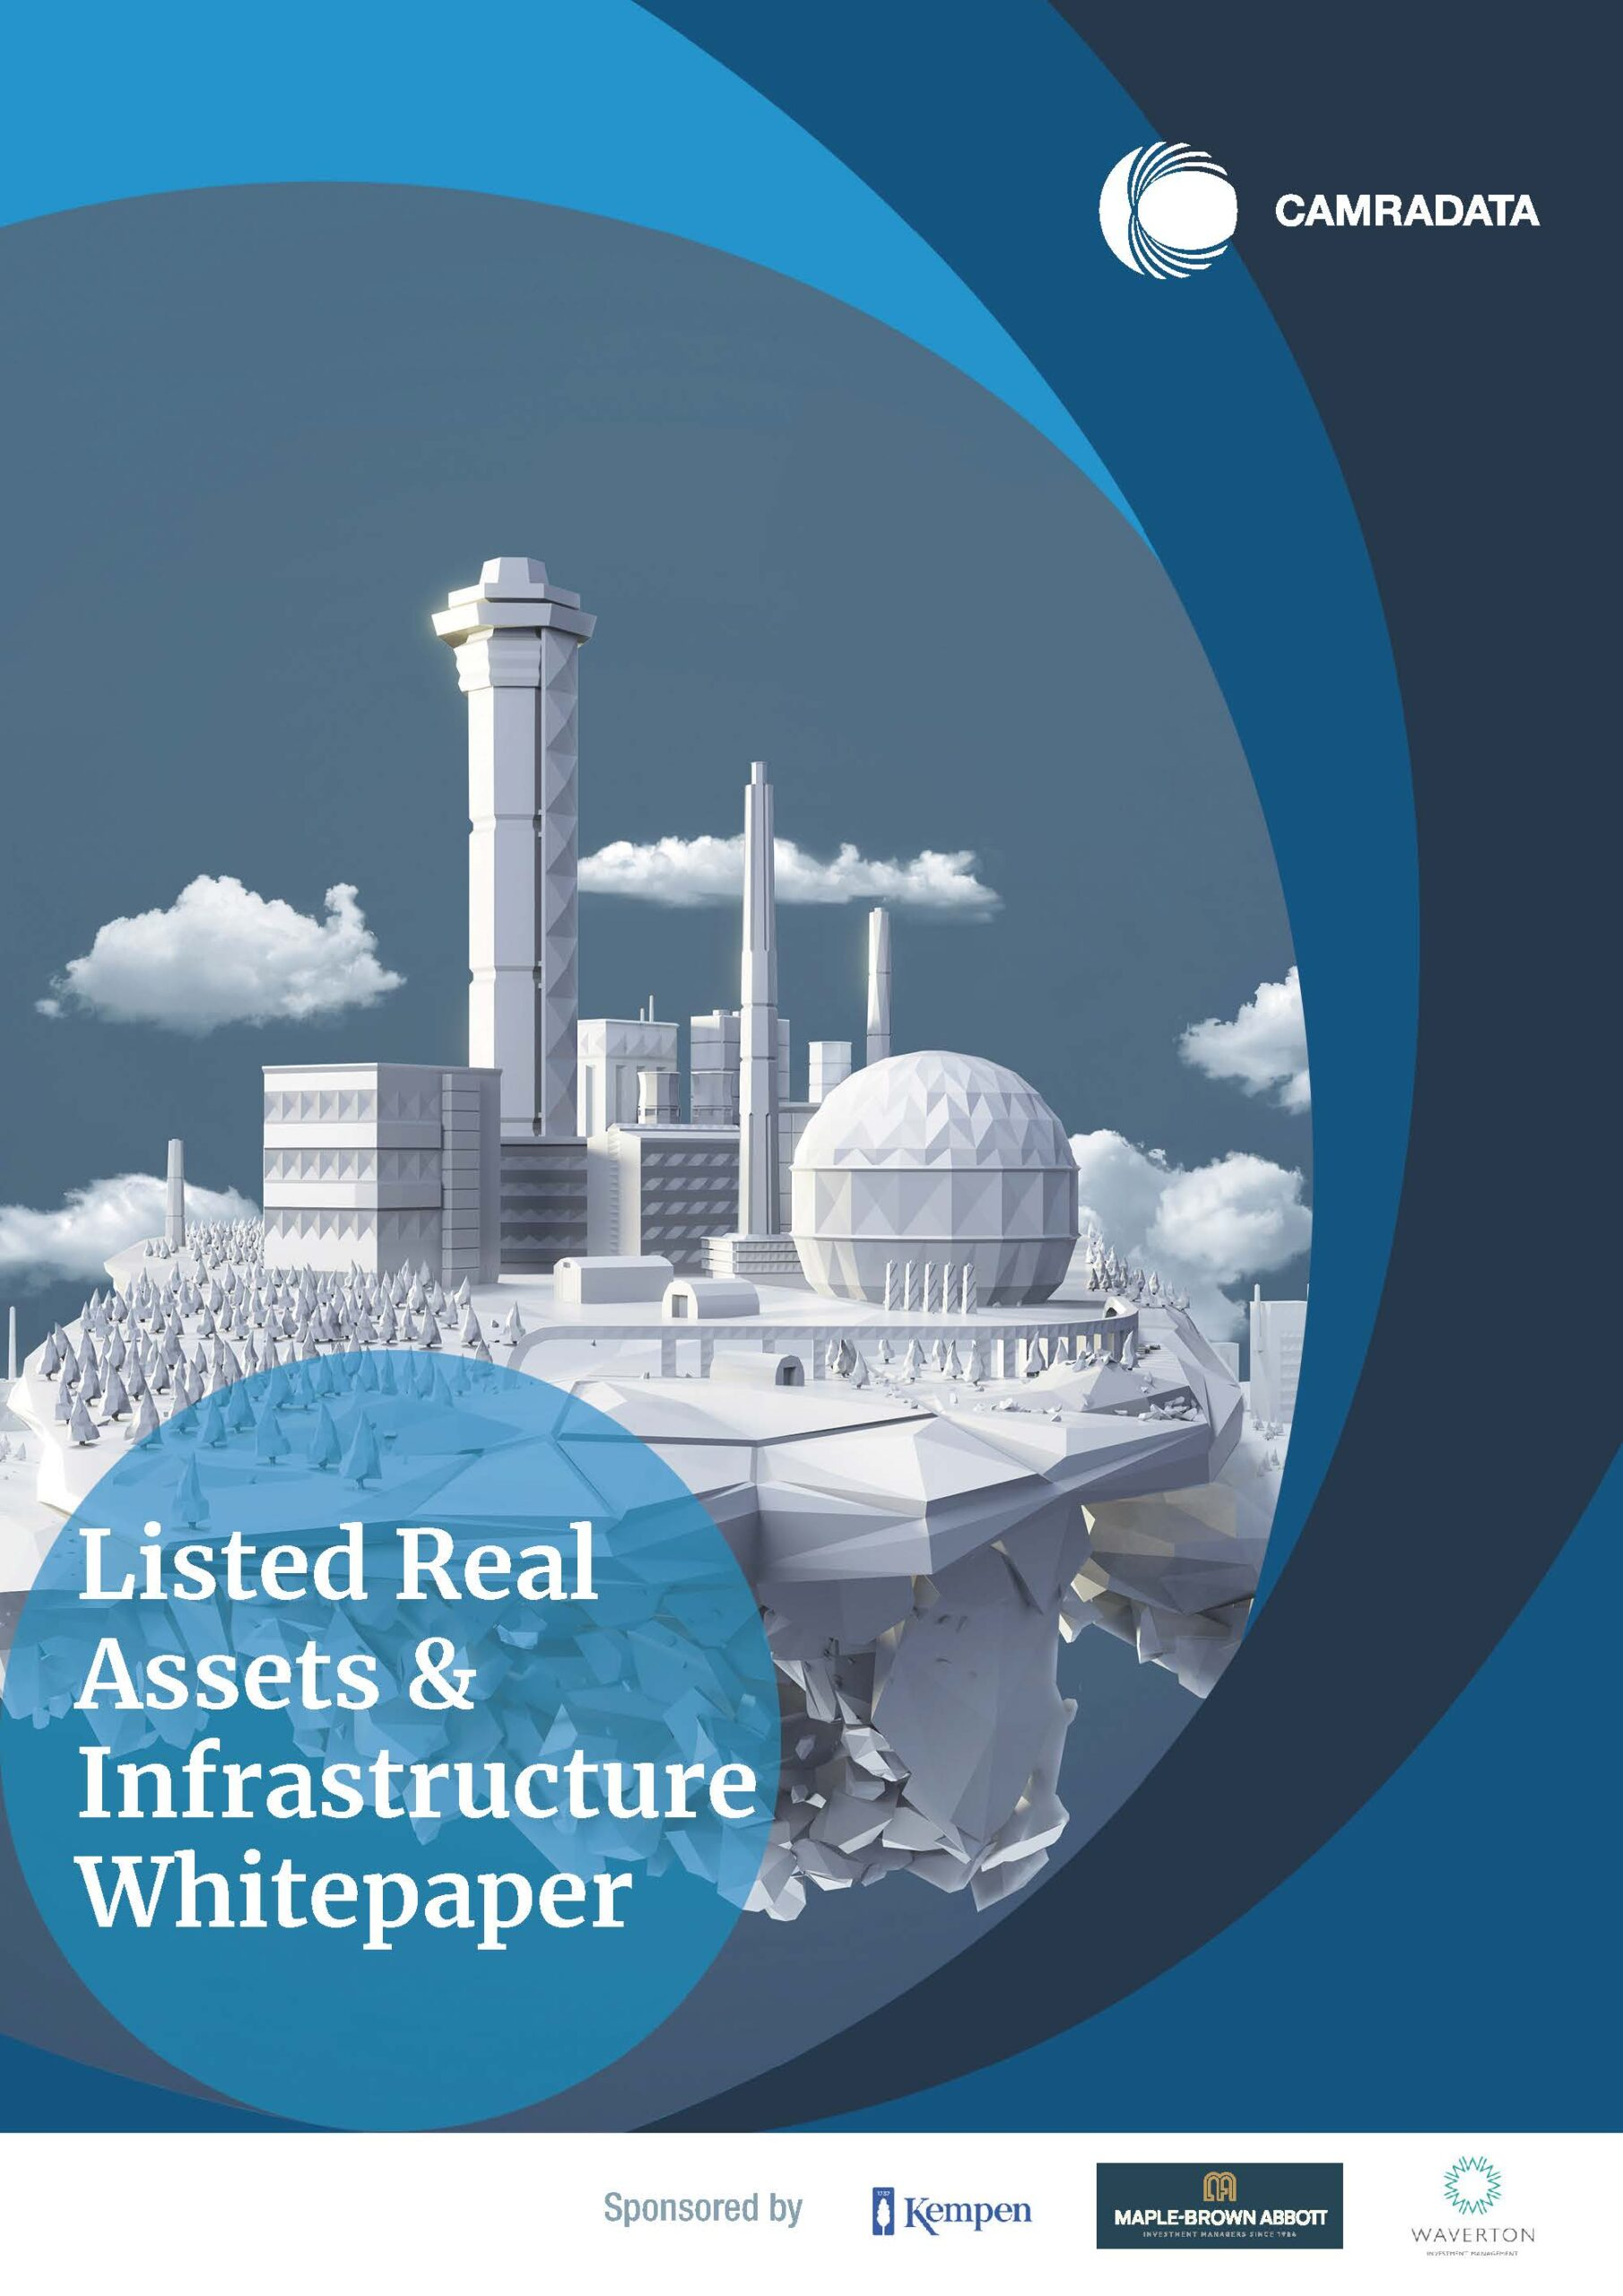 Listed Real Assets & Infrastructure